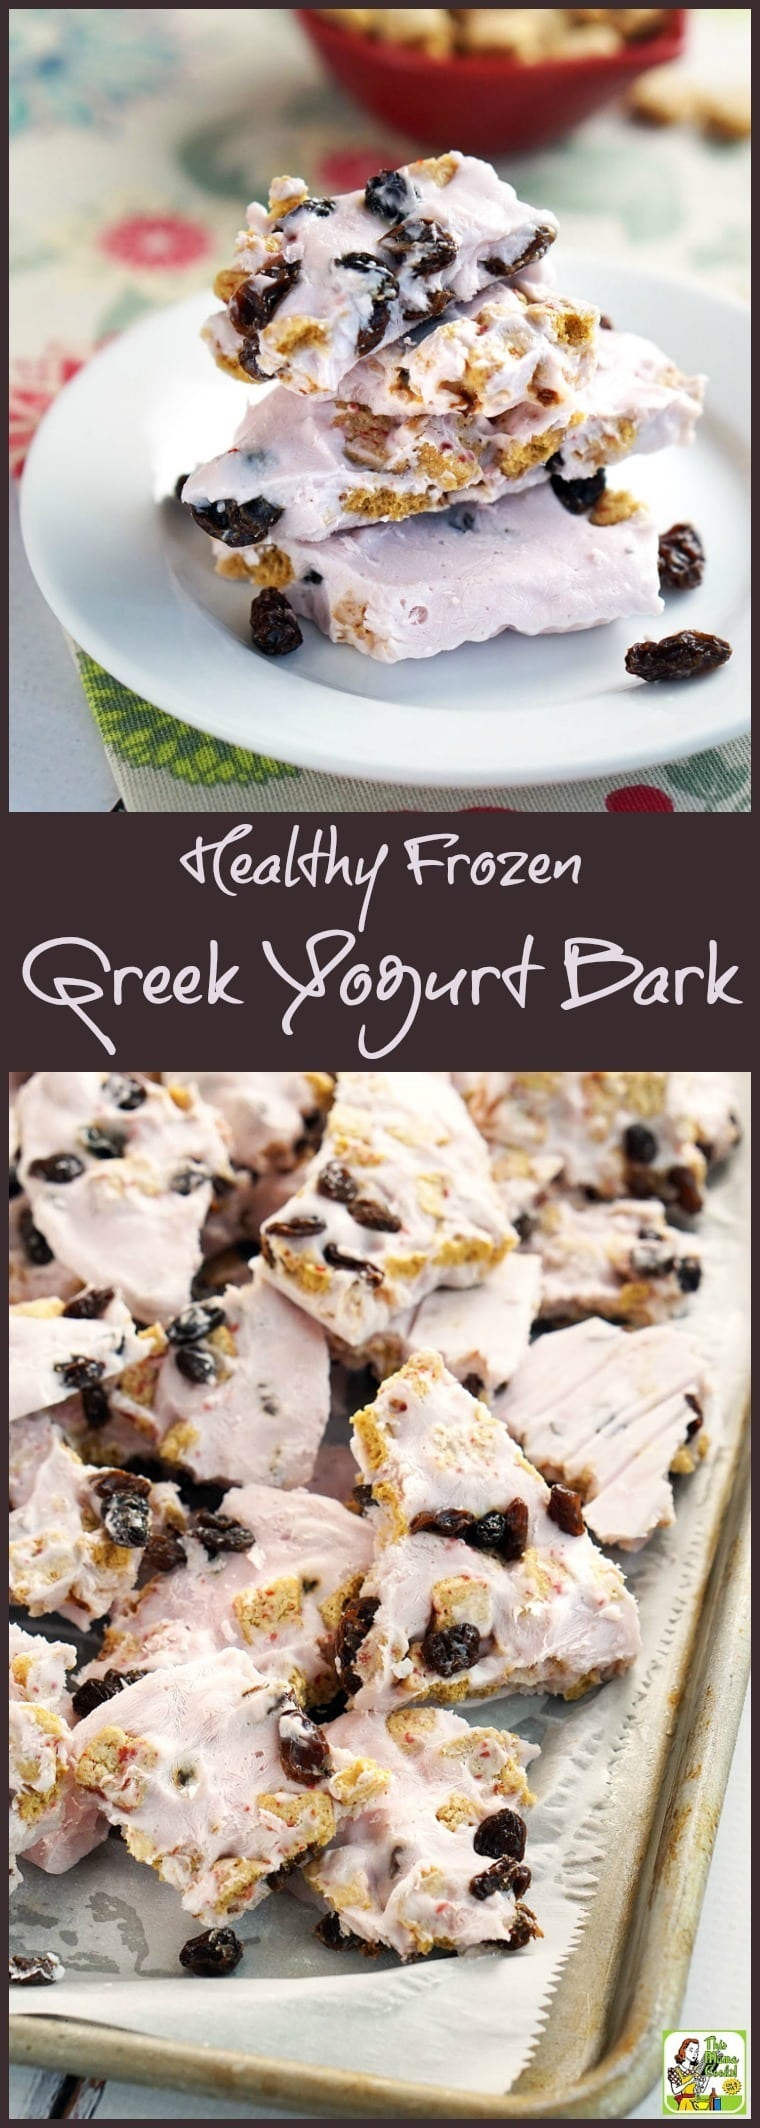 This Healthy Frozen Greek Yogurt Bark recipe is a protein packed snack that your kids will love. Easy to make, keep a supply of yogurt bark in the freezer for a quick breakfast or healthy snack. Click to get this healthy frozen treat recipe.